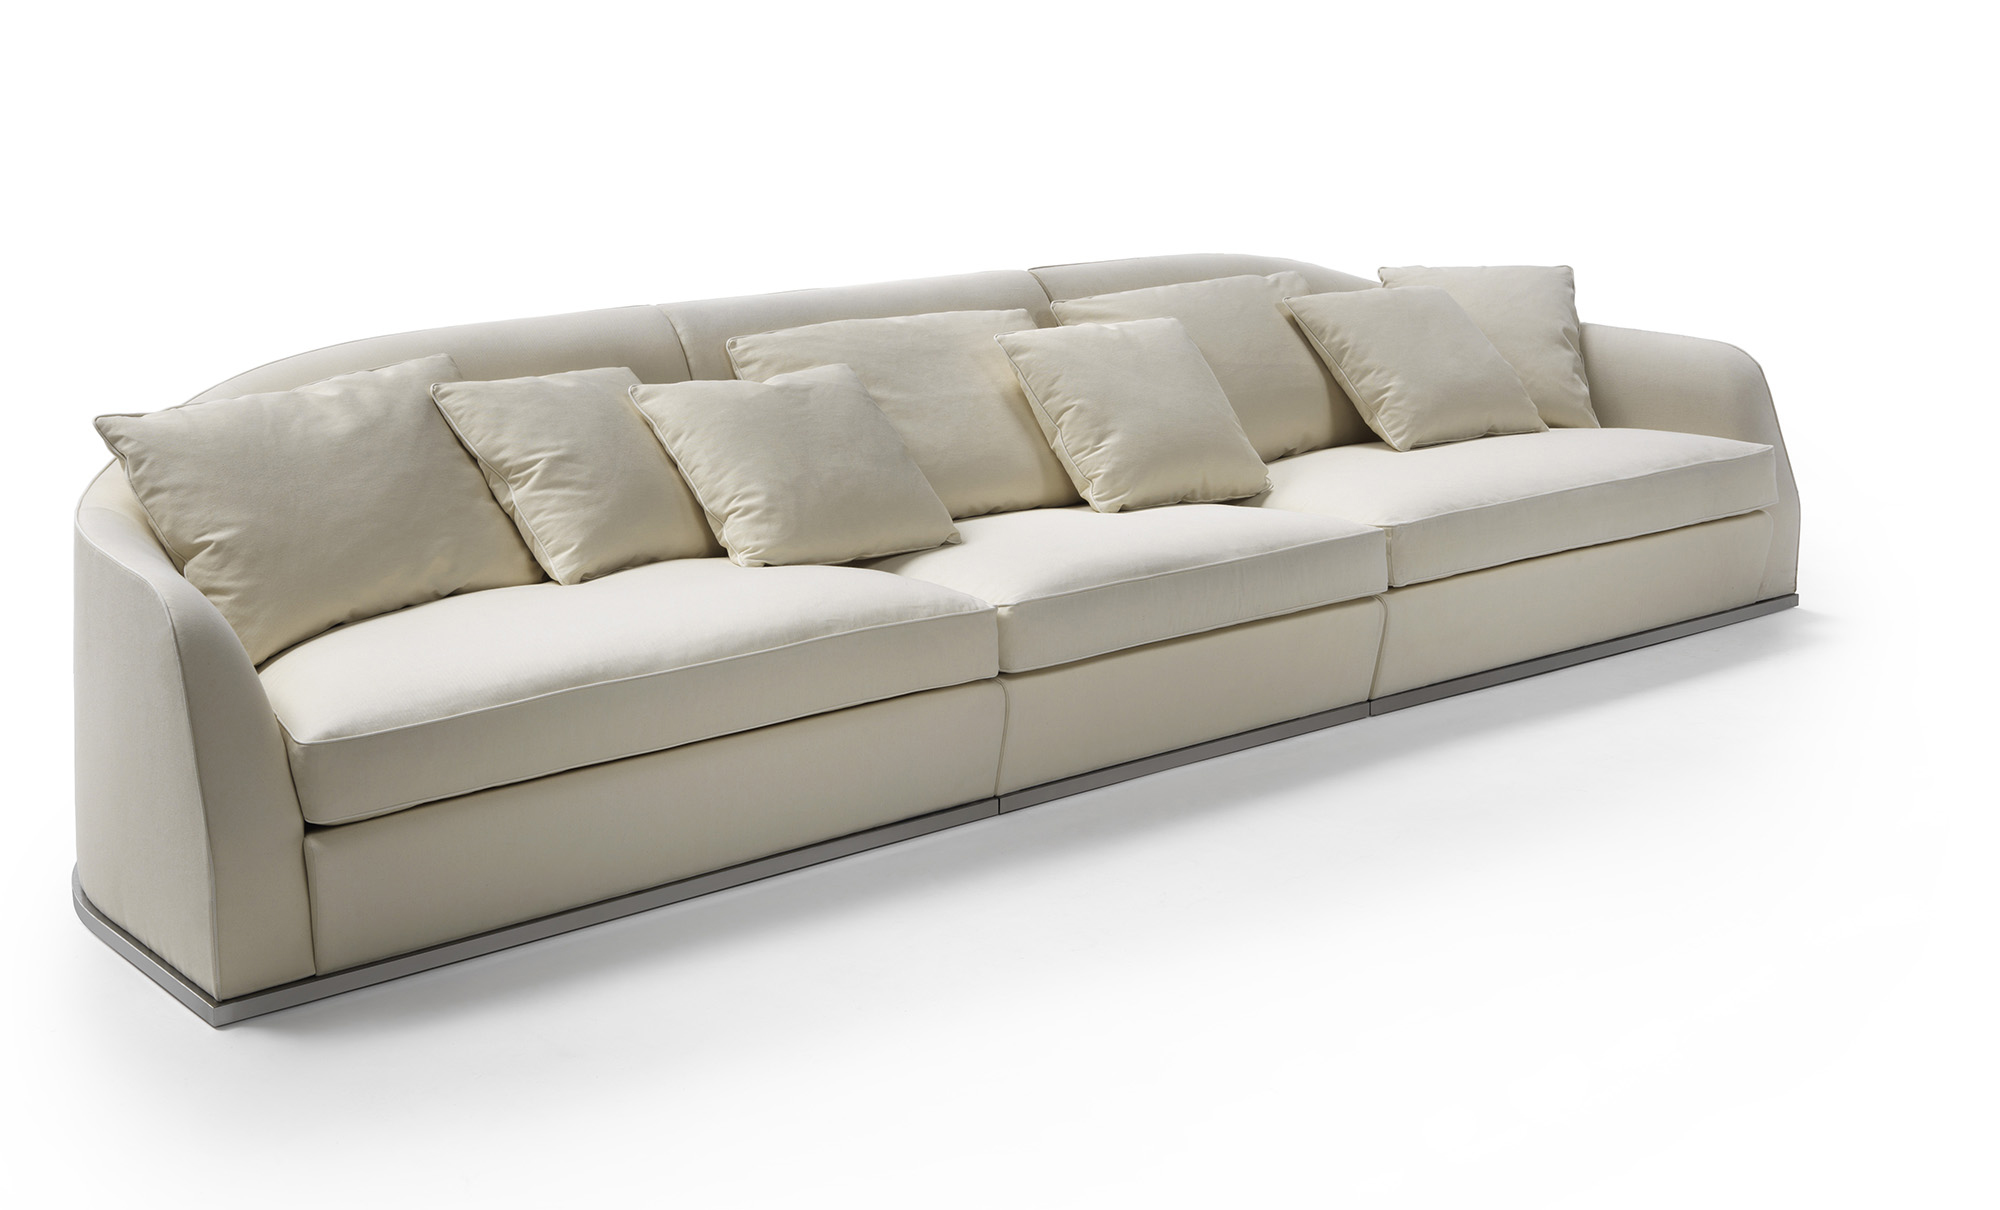 Modular Furniture Alfred Modular Sofa By Flexform Mood Fanuli Furniture